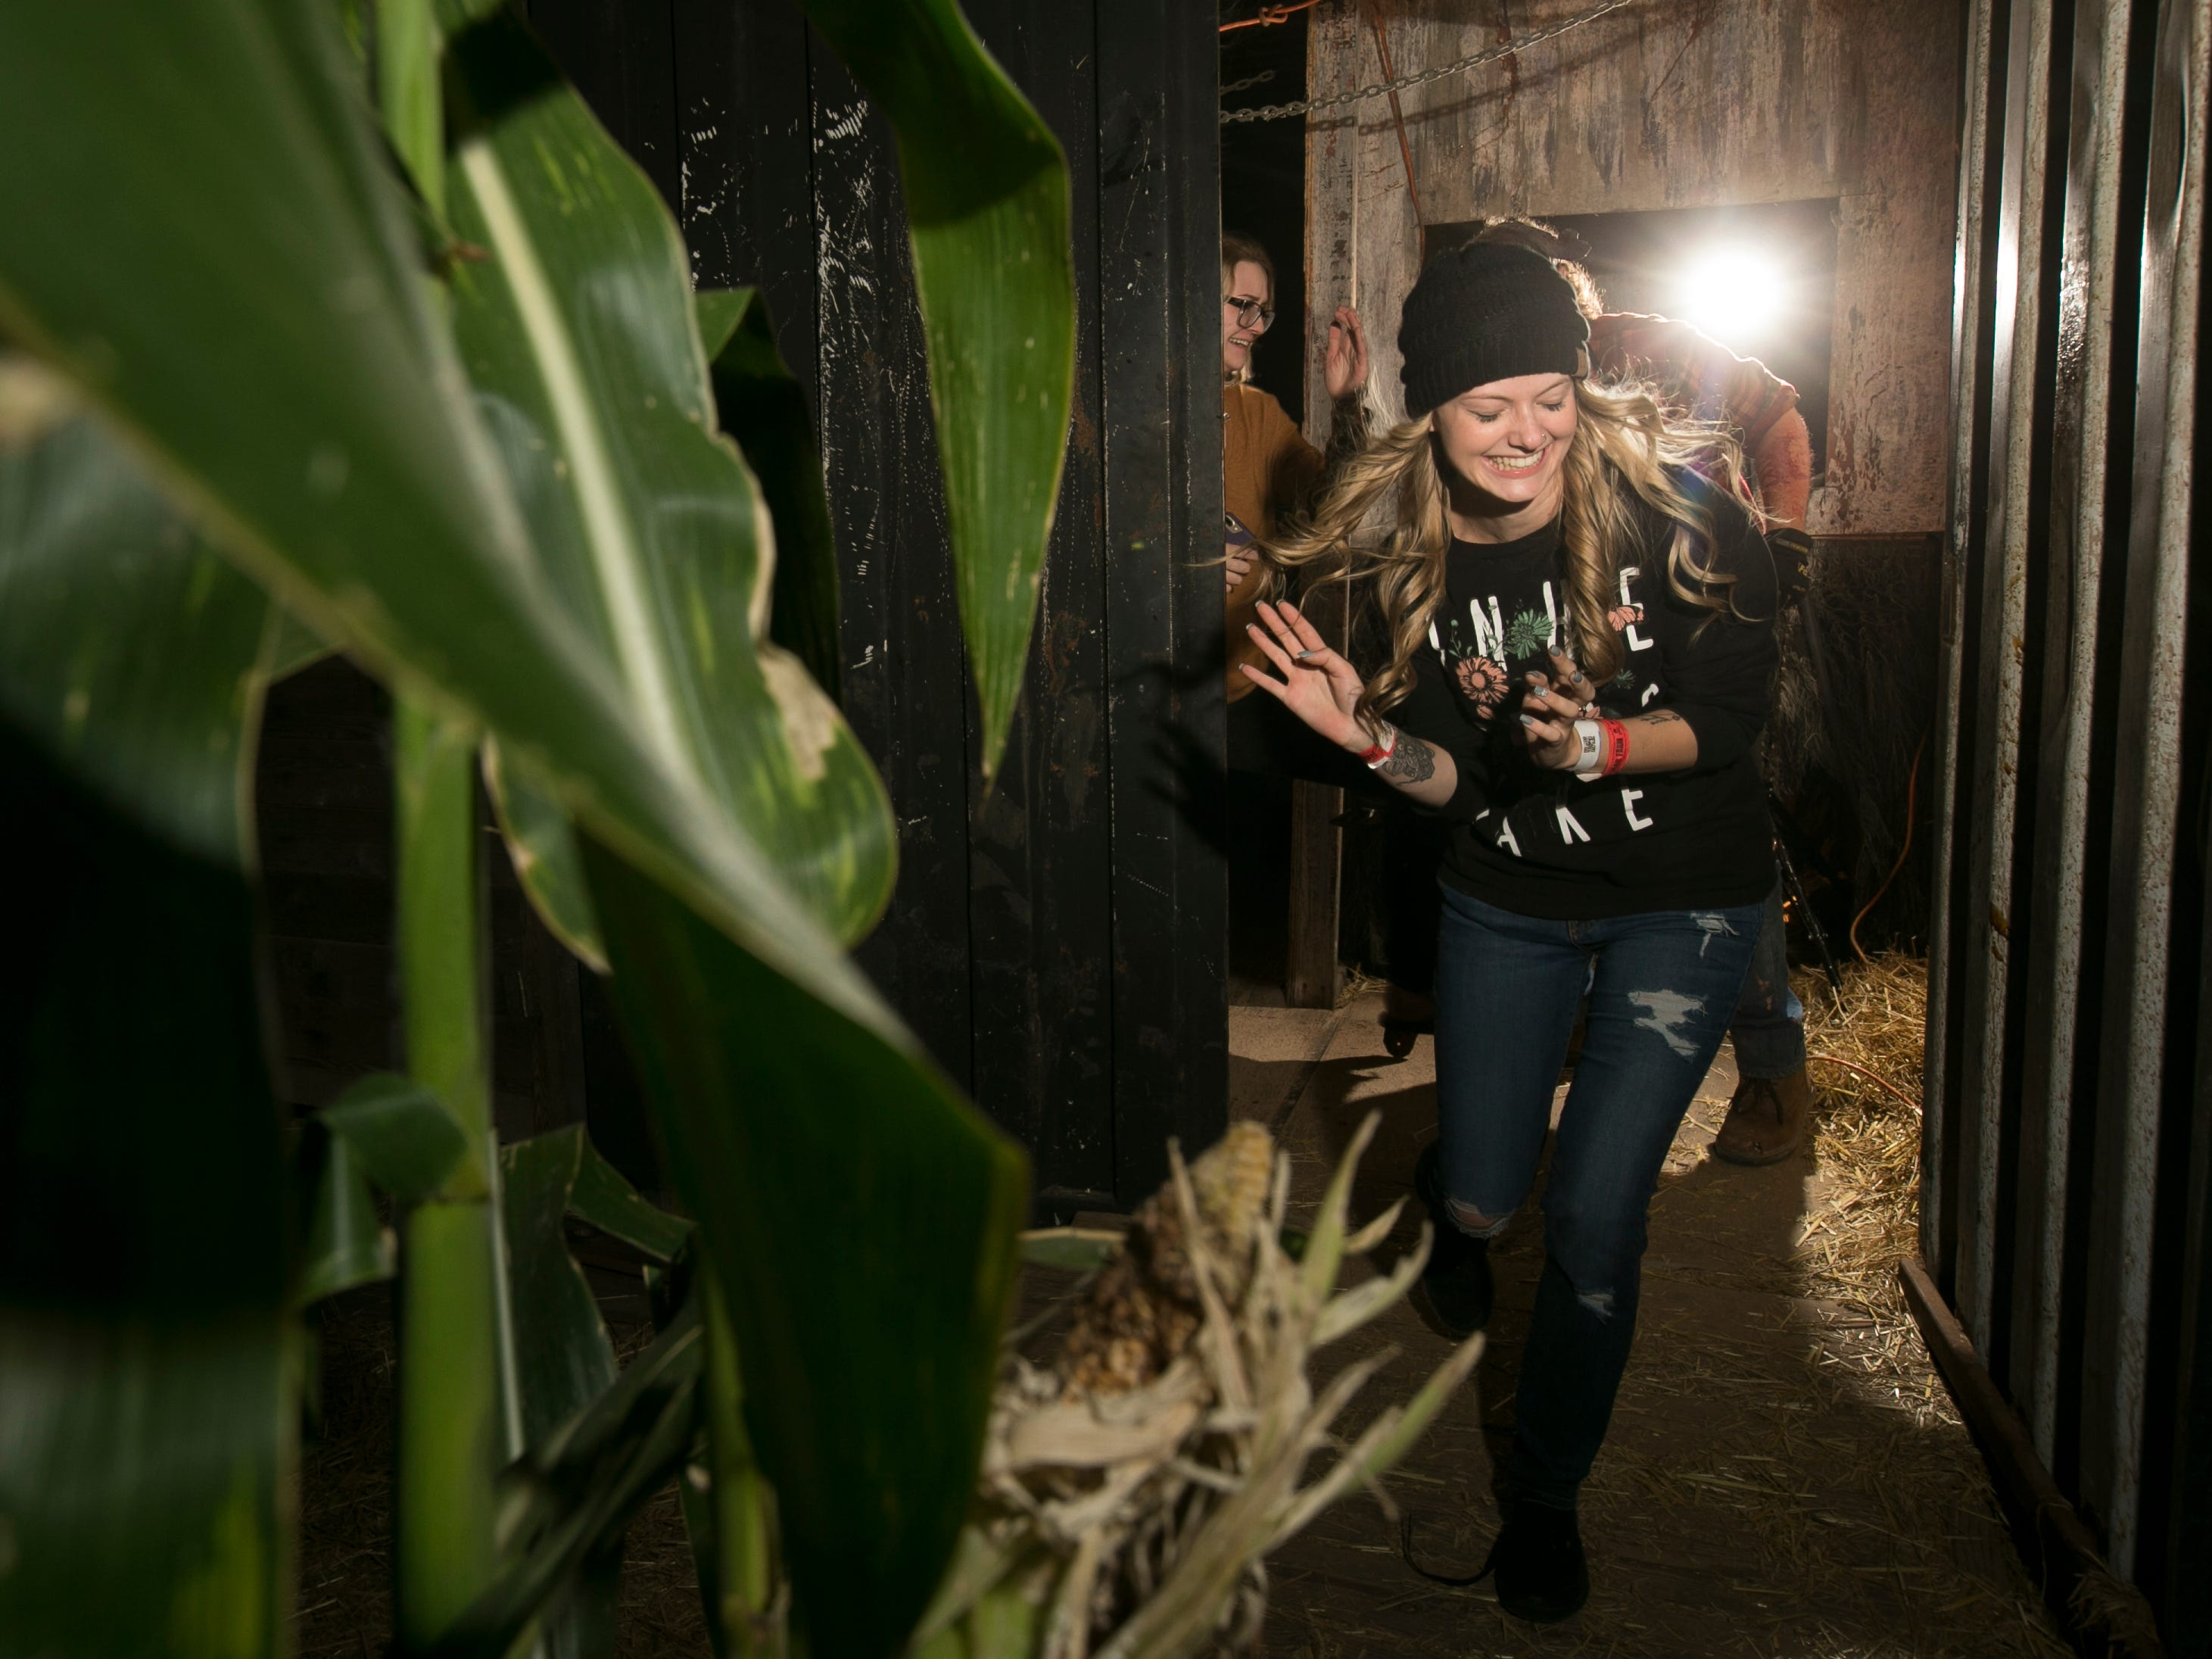 People react to the frights at Fear Farm in Phoenix, Ariz. on Oct. 25, 2018.